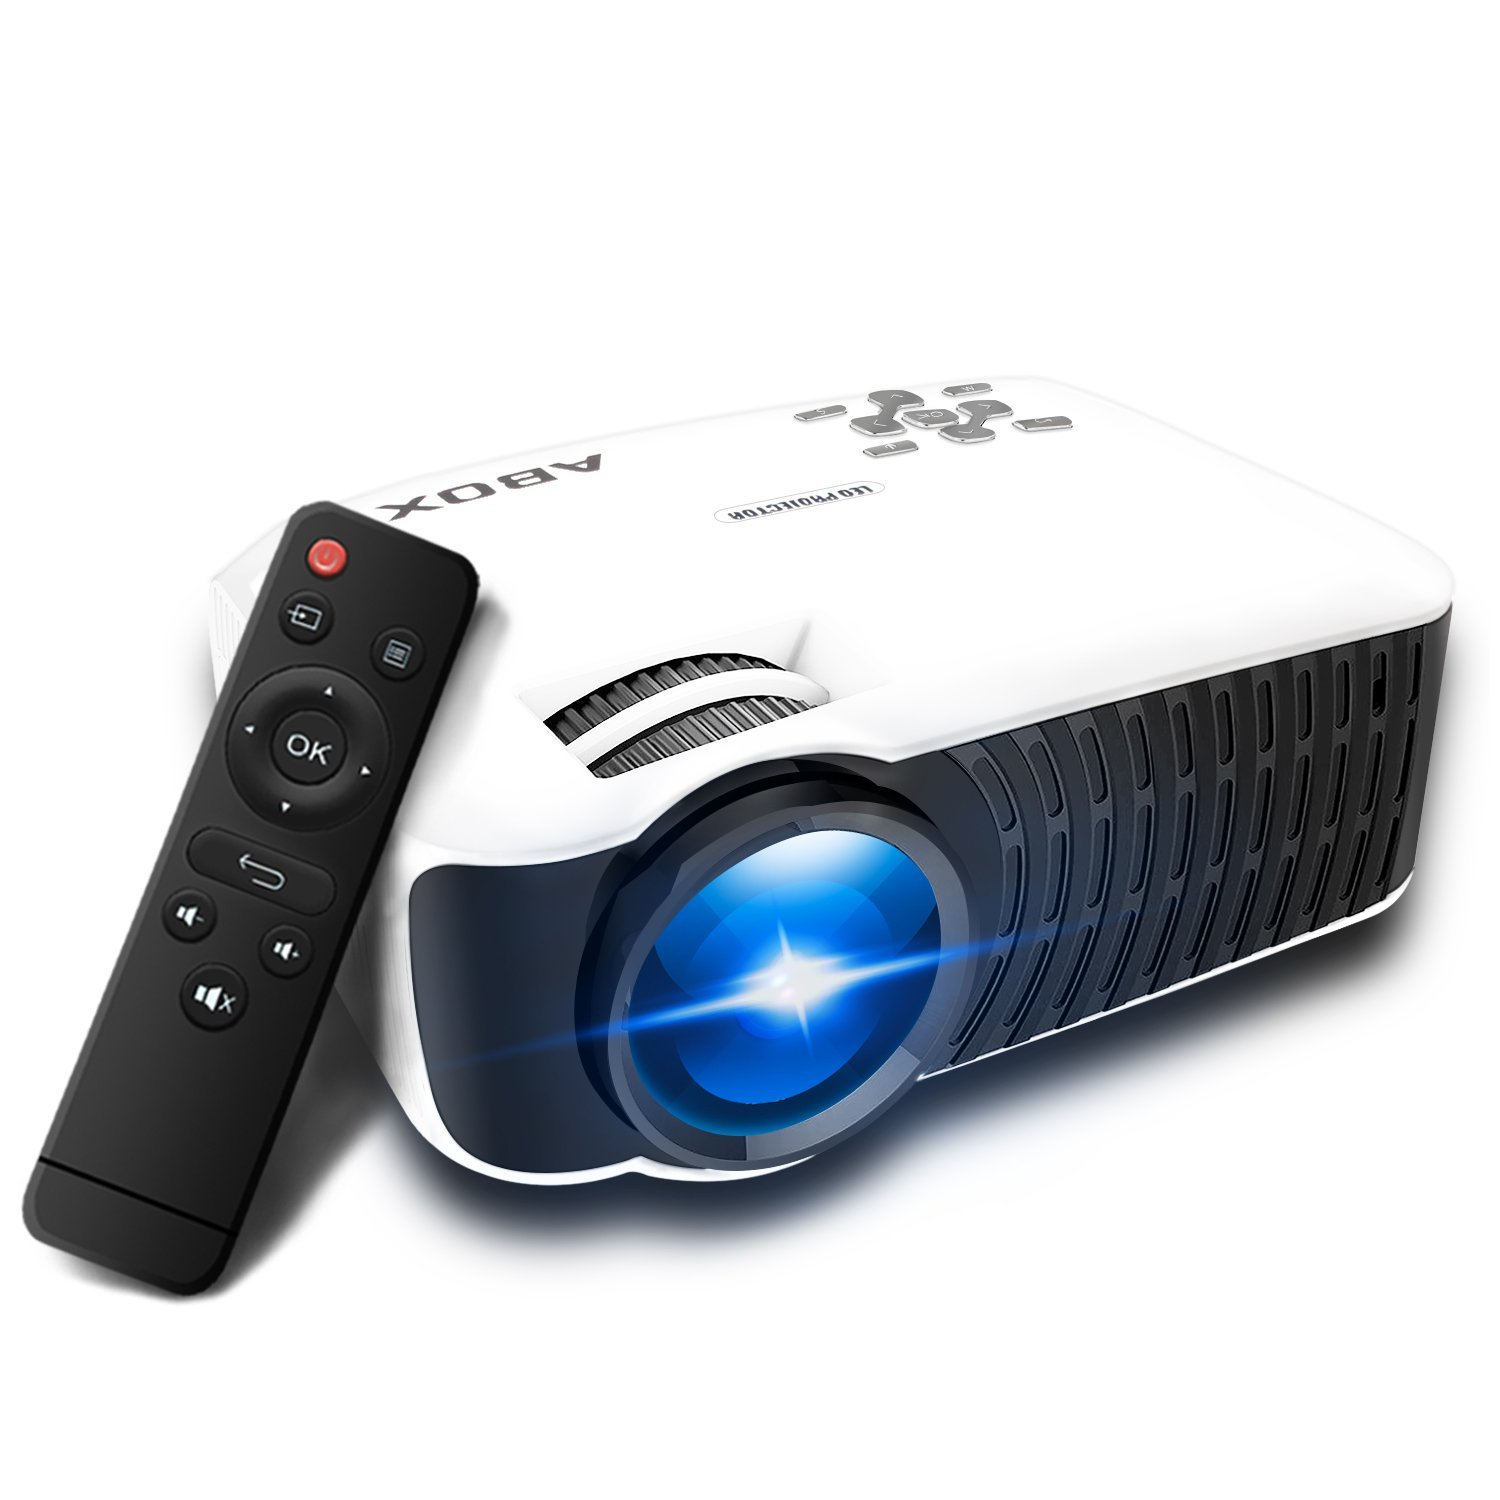 Projector 2400 Lumens, Globmall ABOX T22 Support 1080p HD Multimedia Portable Mini Home Theater LED Video Projector Support HDMI USB SD Card VGA AV Input for PC Laptop/PS4/Xbox